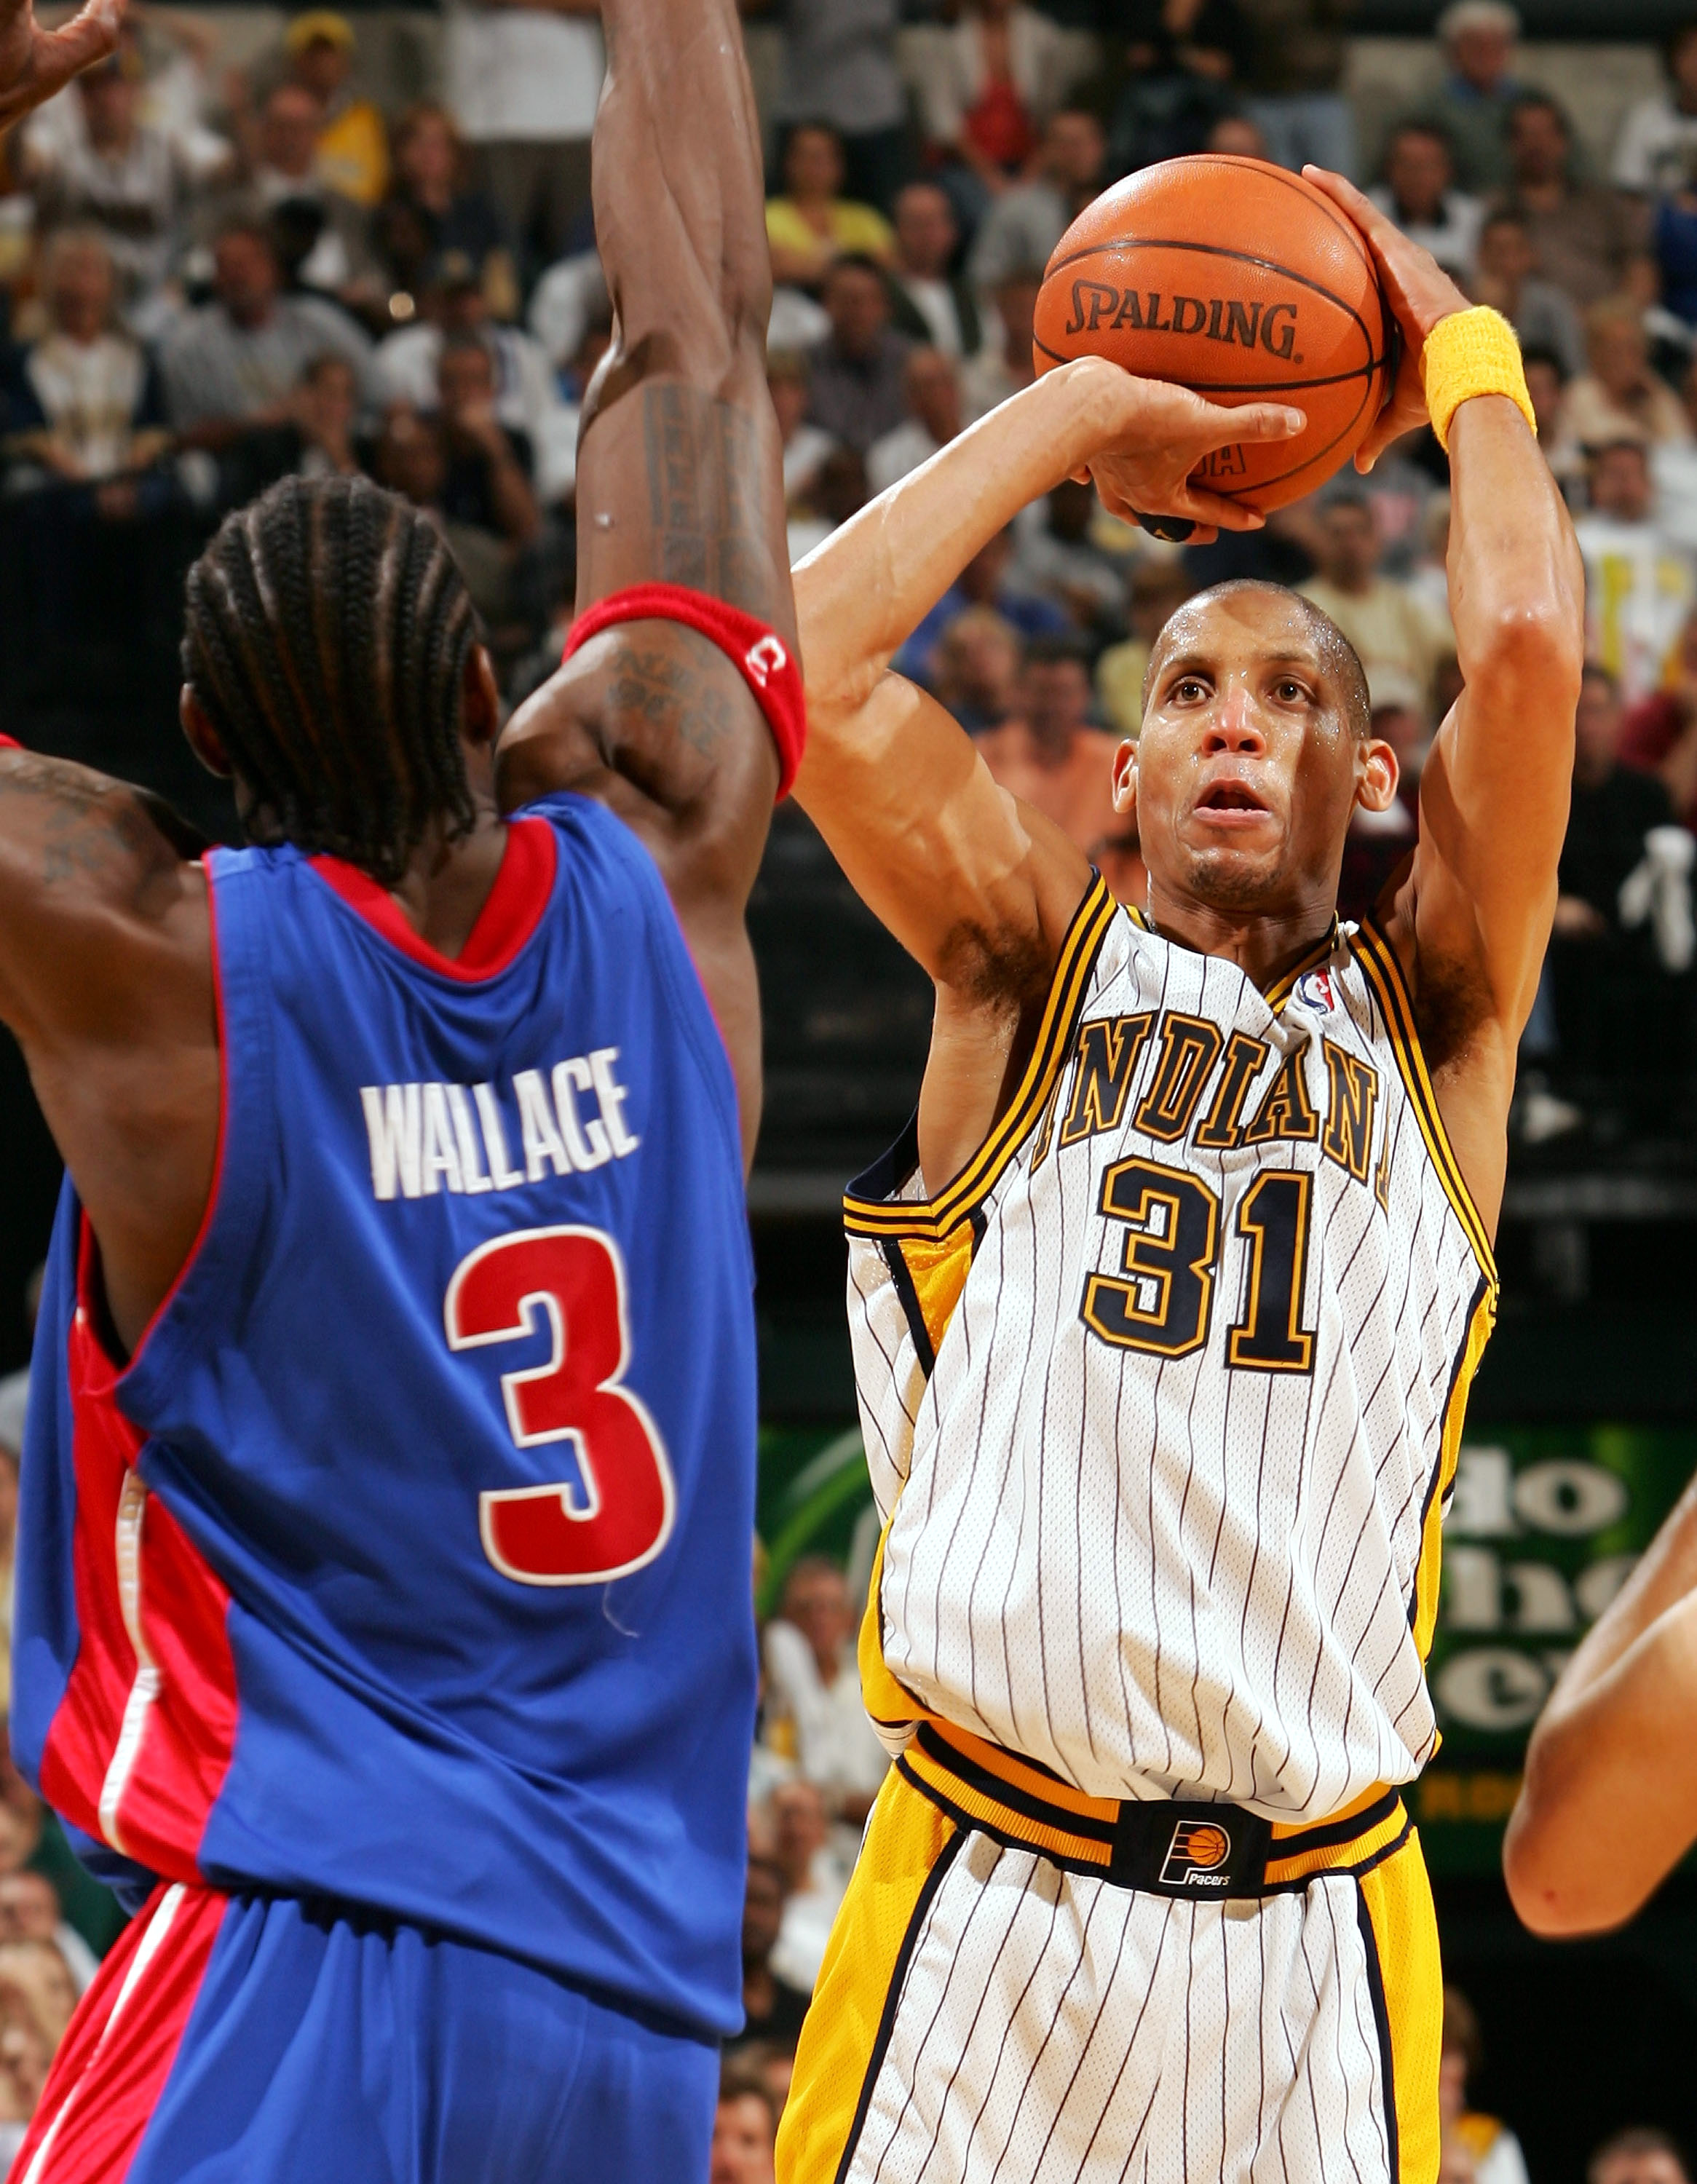 INDIANAPOLIS - MAY 13:  Reggie Miller #31 of the Indiana Pacers shoots against Ben Wallace #3 of the Detroit Pistons in Game three of the Eastern Conference Semifinals during the 2005 NBA Playoffs at Conseco Fieldhouse on May 13, 2005 in Indianapolis, Ind